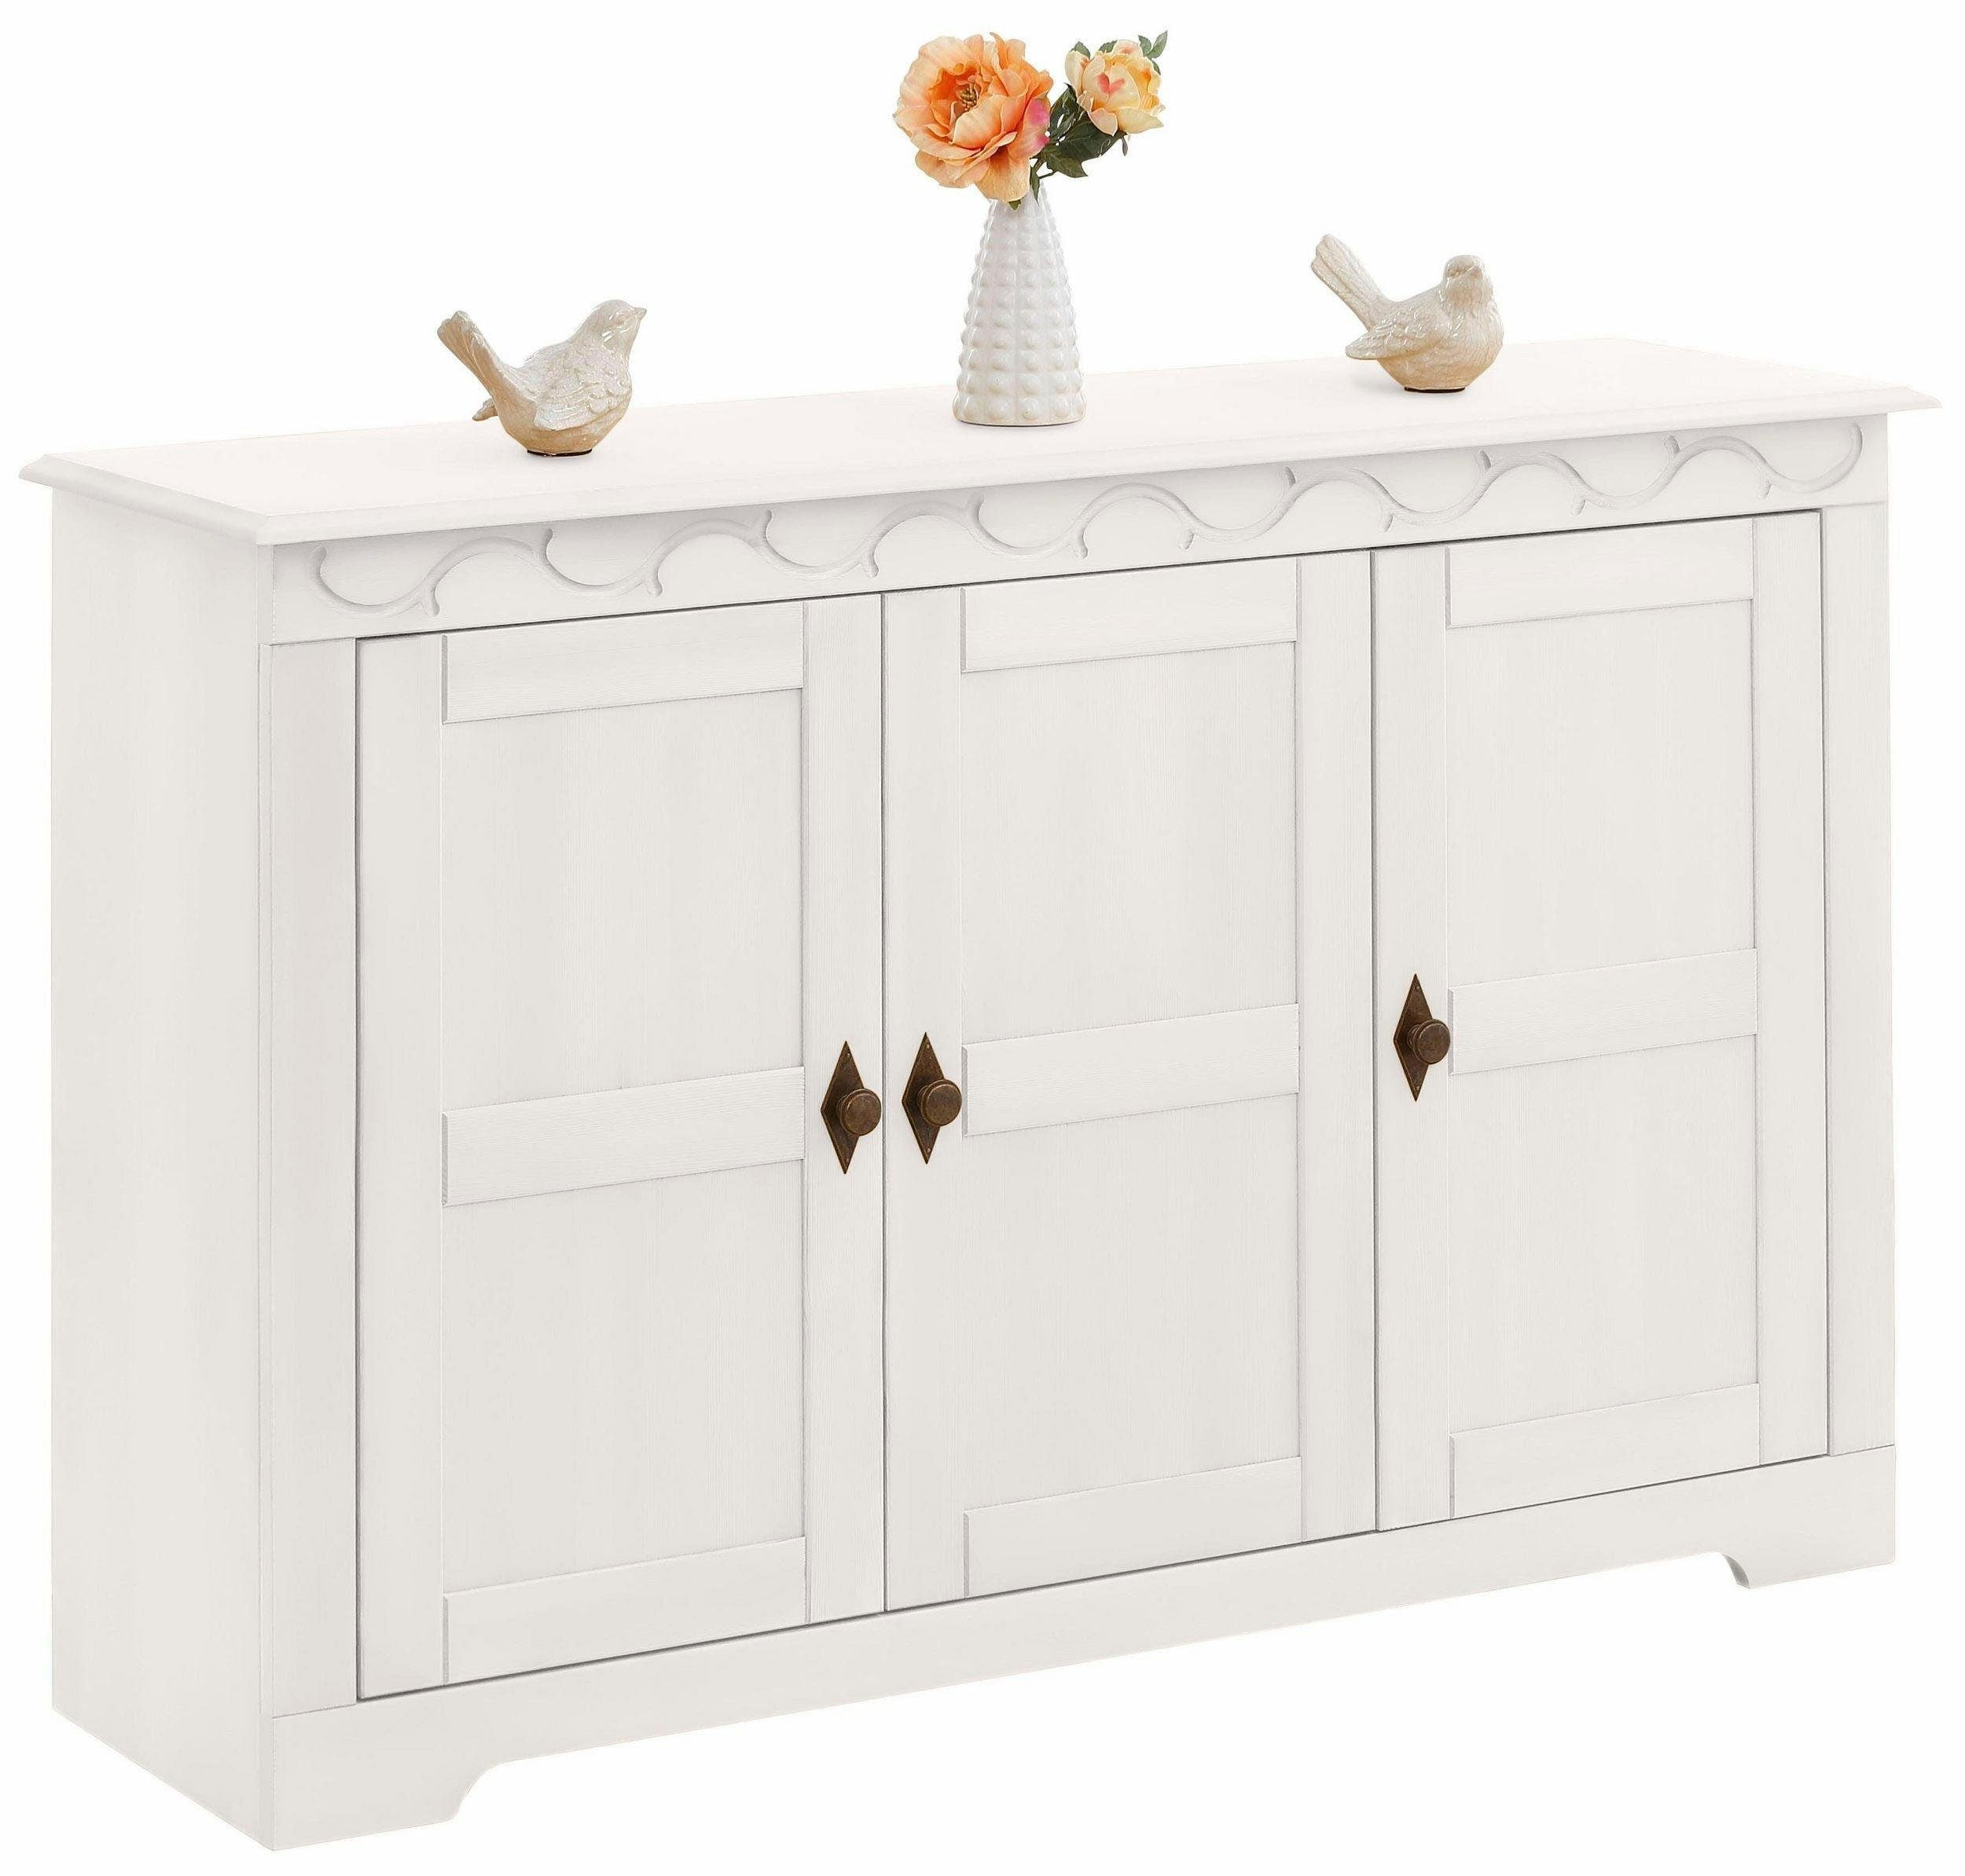 Home affaire Sideboard Laura